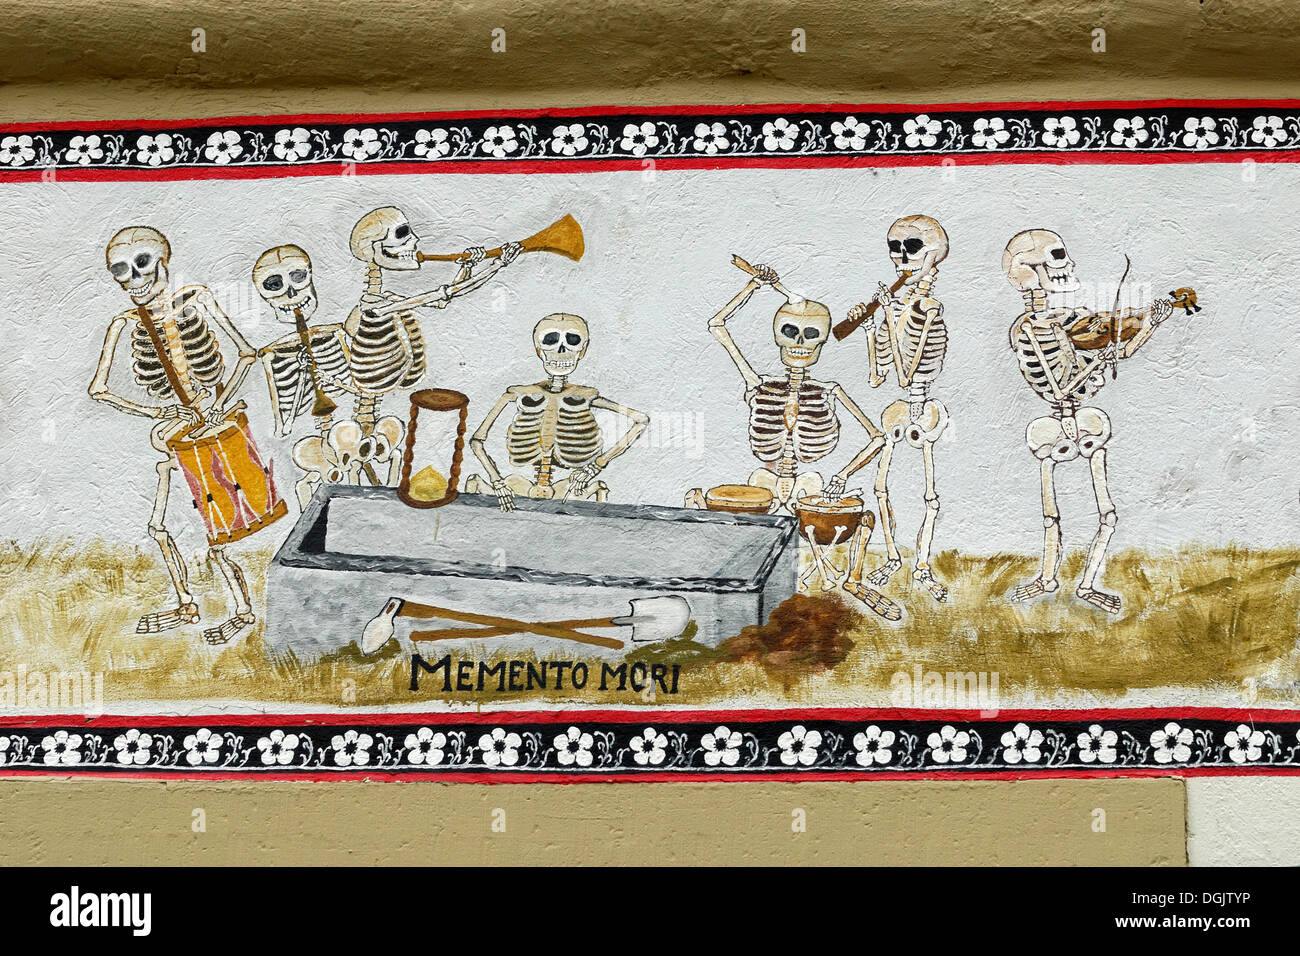 Danse Macabre or Dance of Death motif on an old half-timbered house, Eppingen, Baden-Wuerttemberg - Stock Image